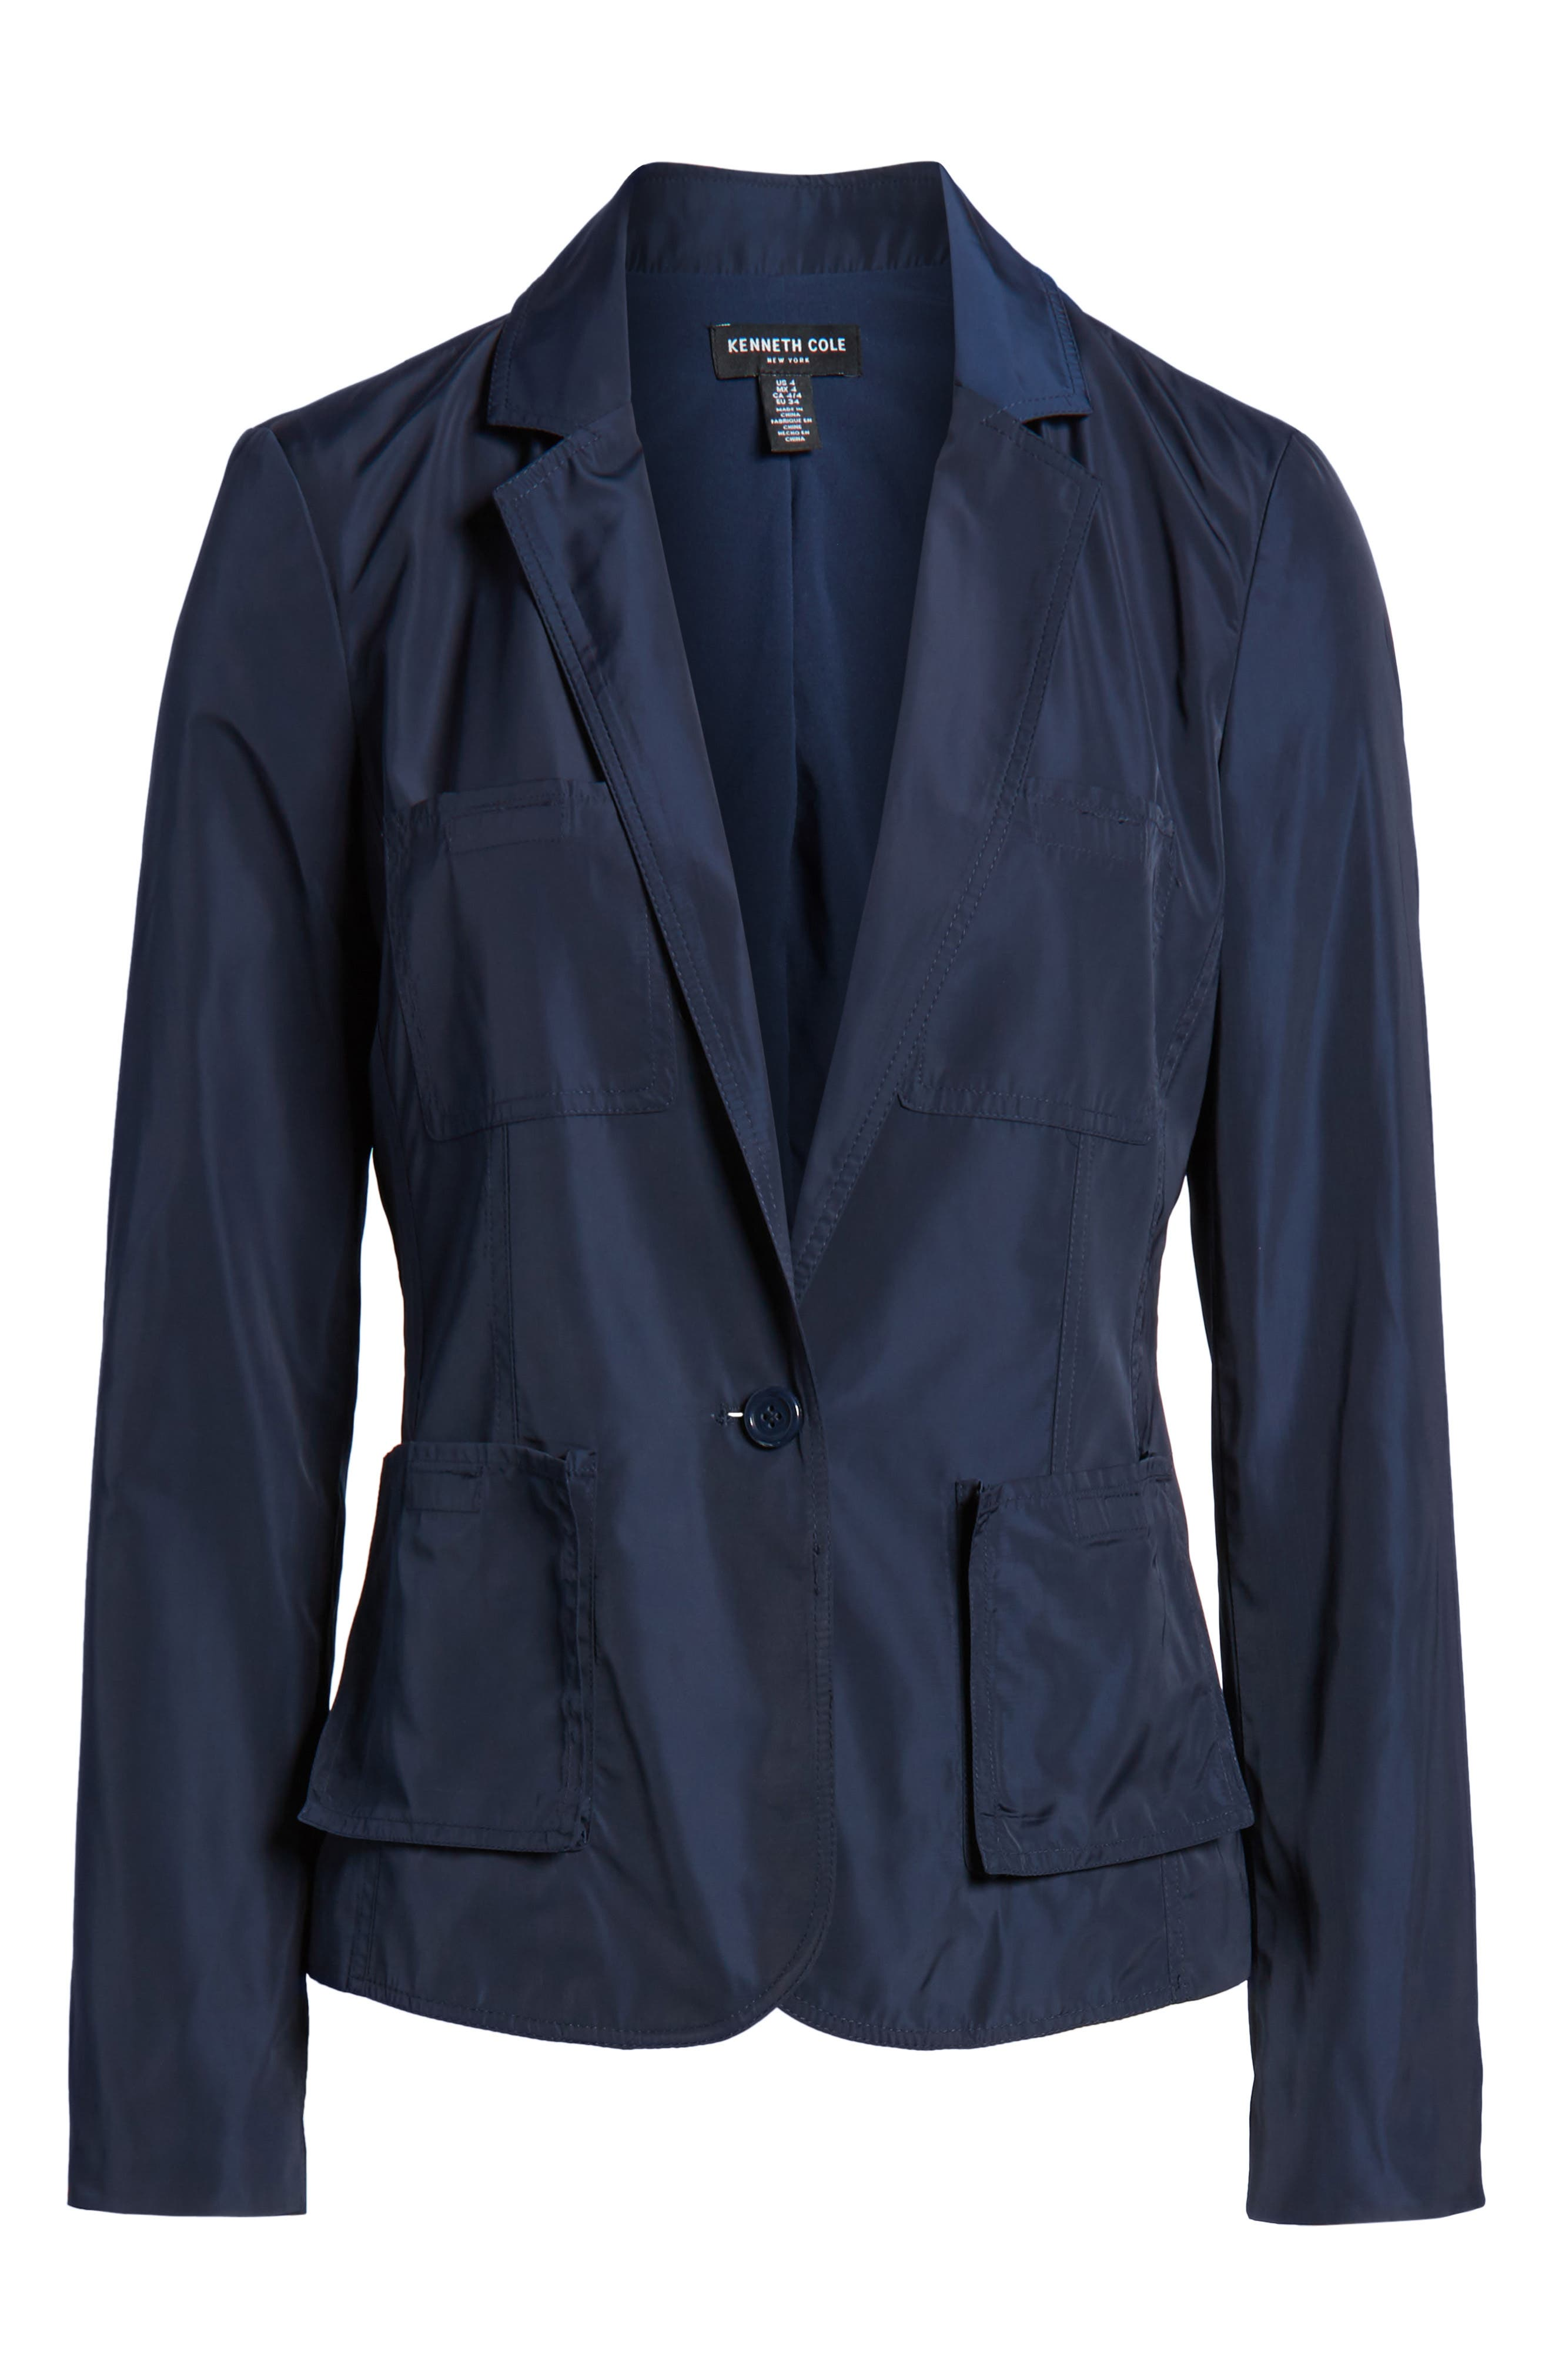 KENNETH COLE NEW YORK,                             Two-Button Blazer,                             Alternate thumbnail 6, color,                             404